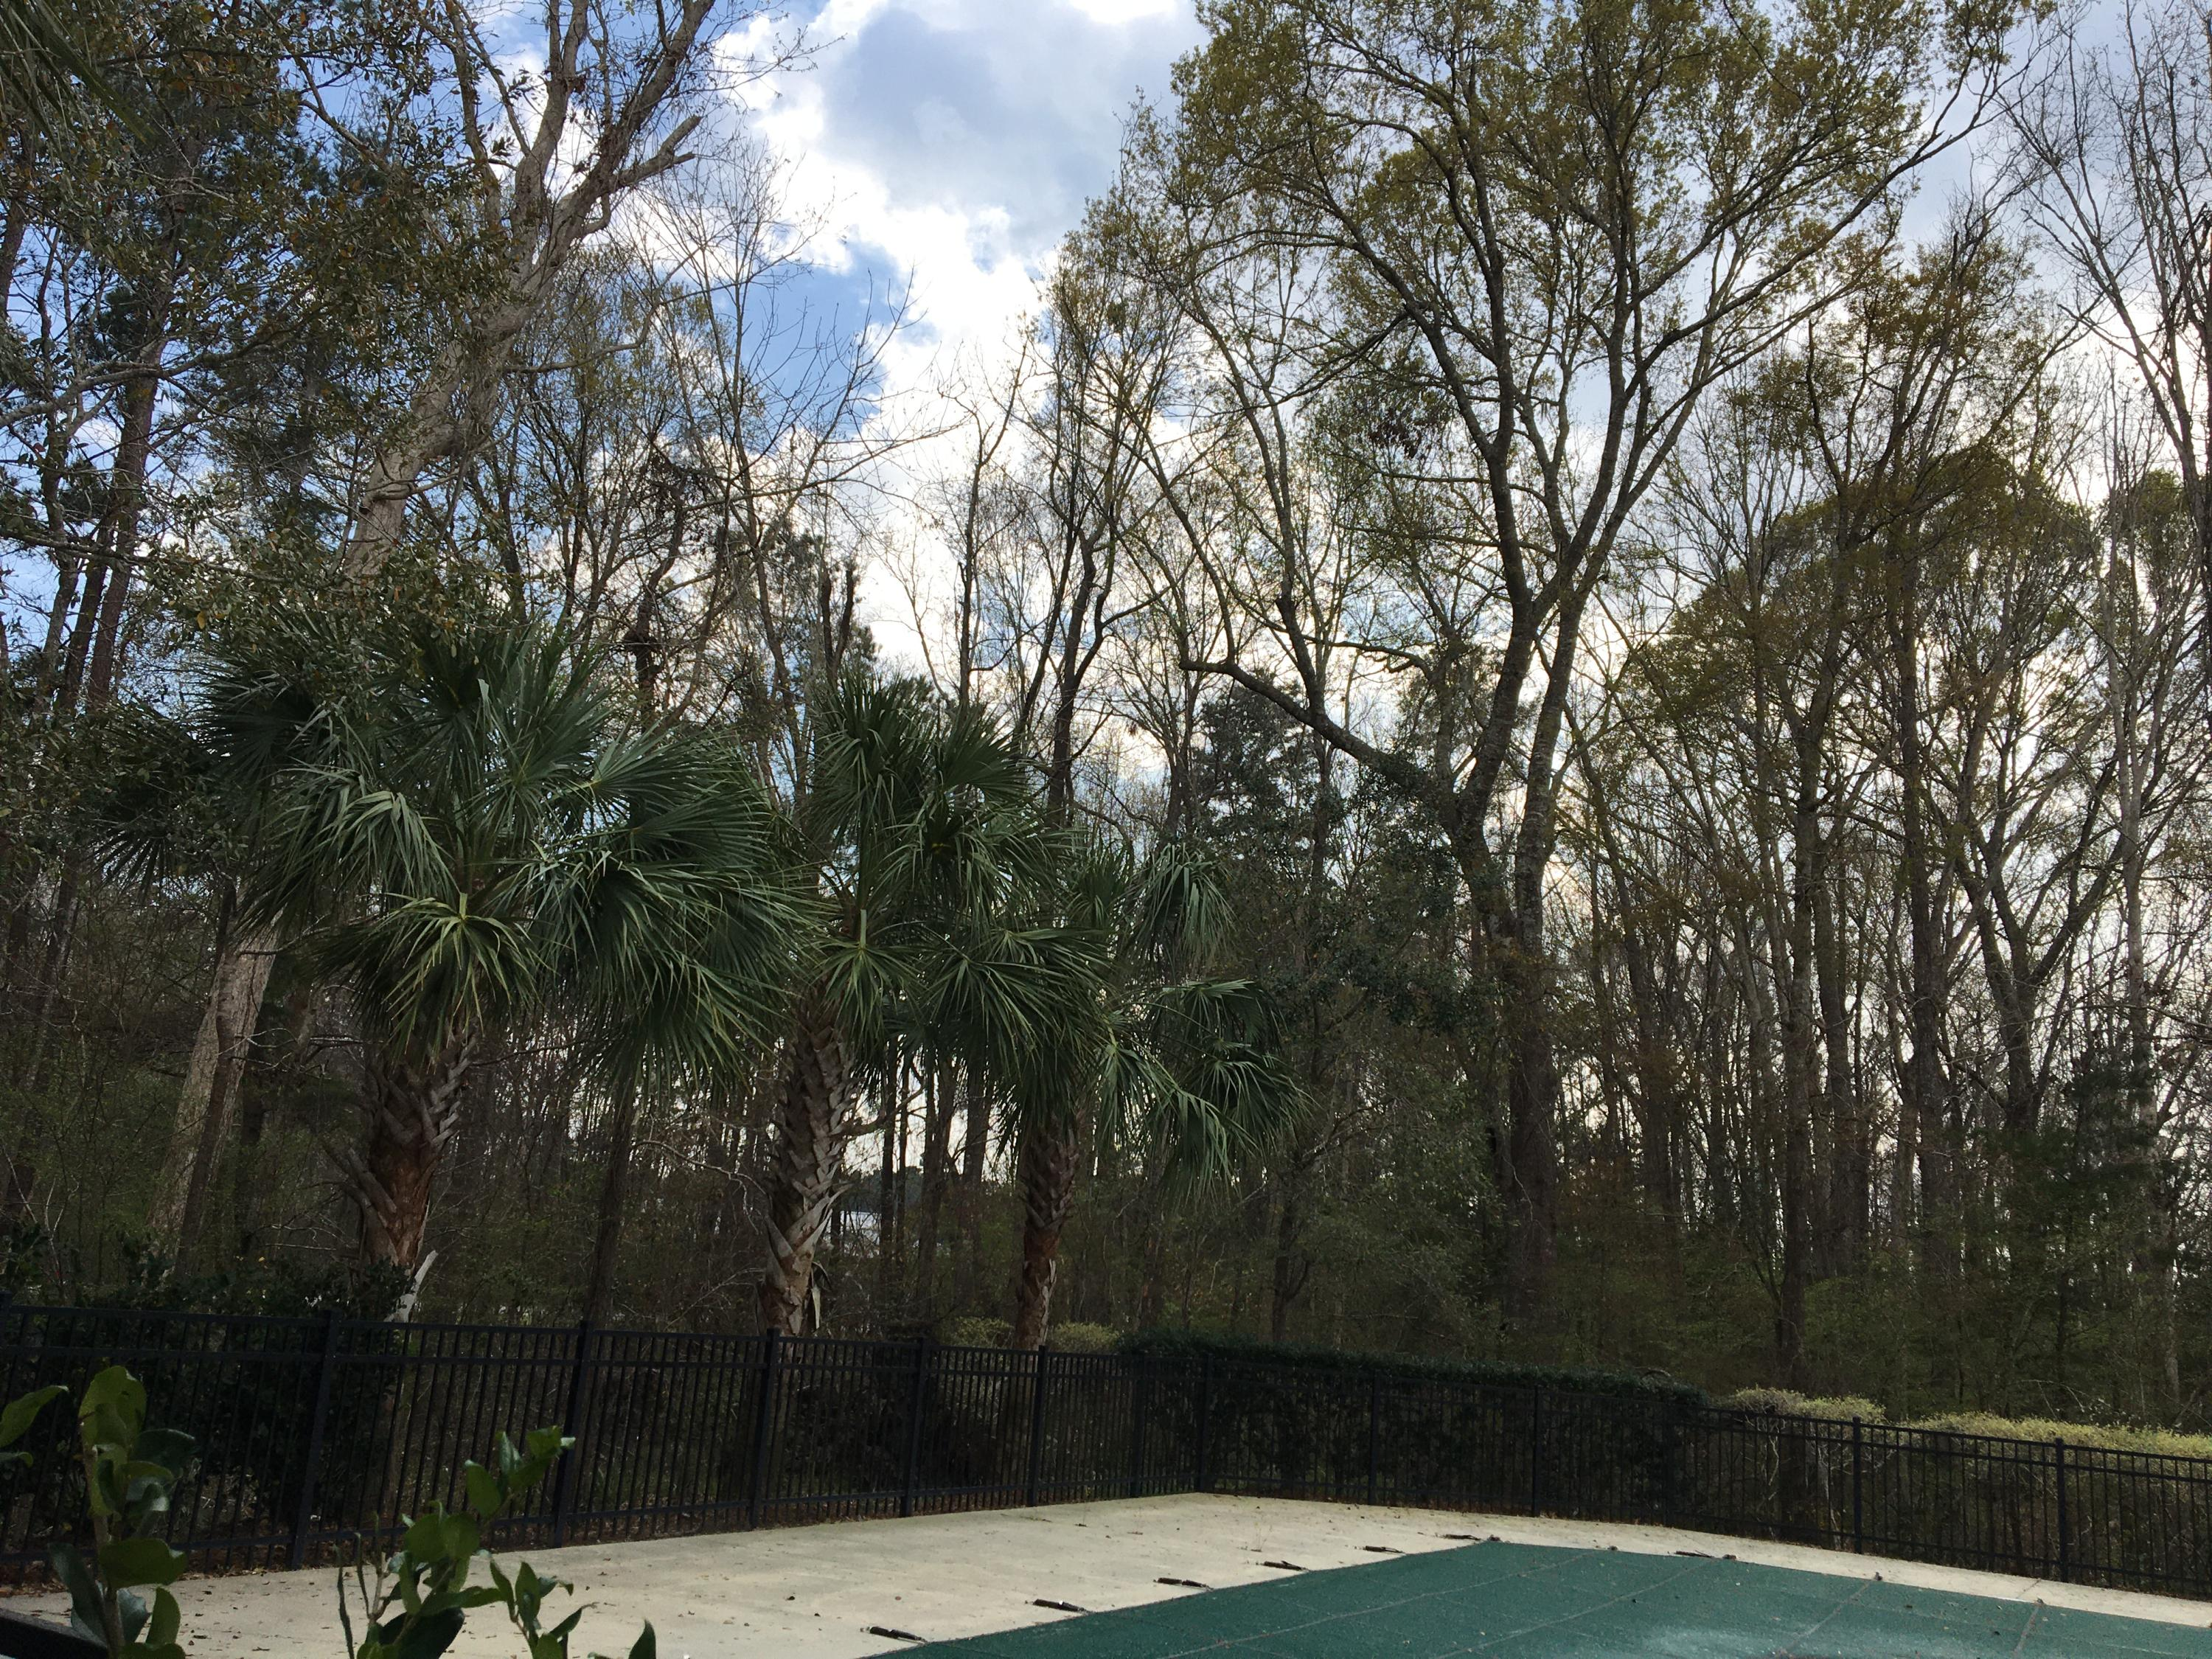 Coosaw Commons Homes For Sale - 8731 Grassy Oak Trail, North Charleston, SC - 0